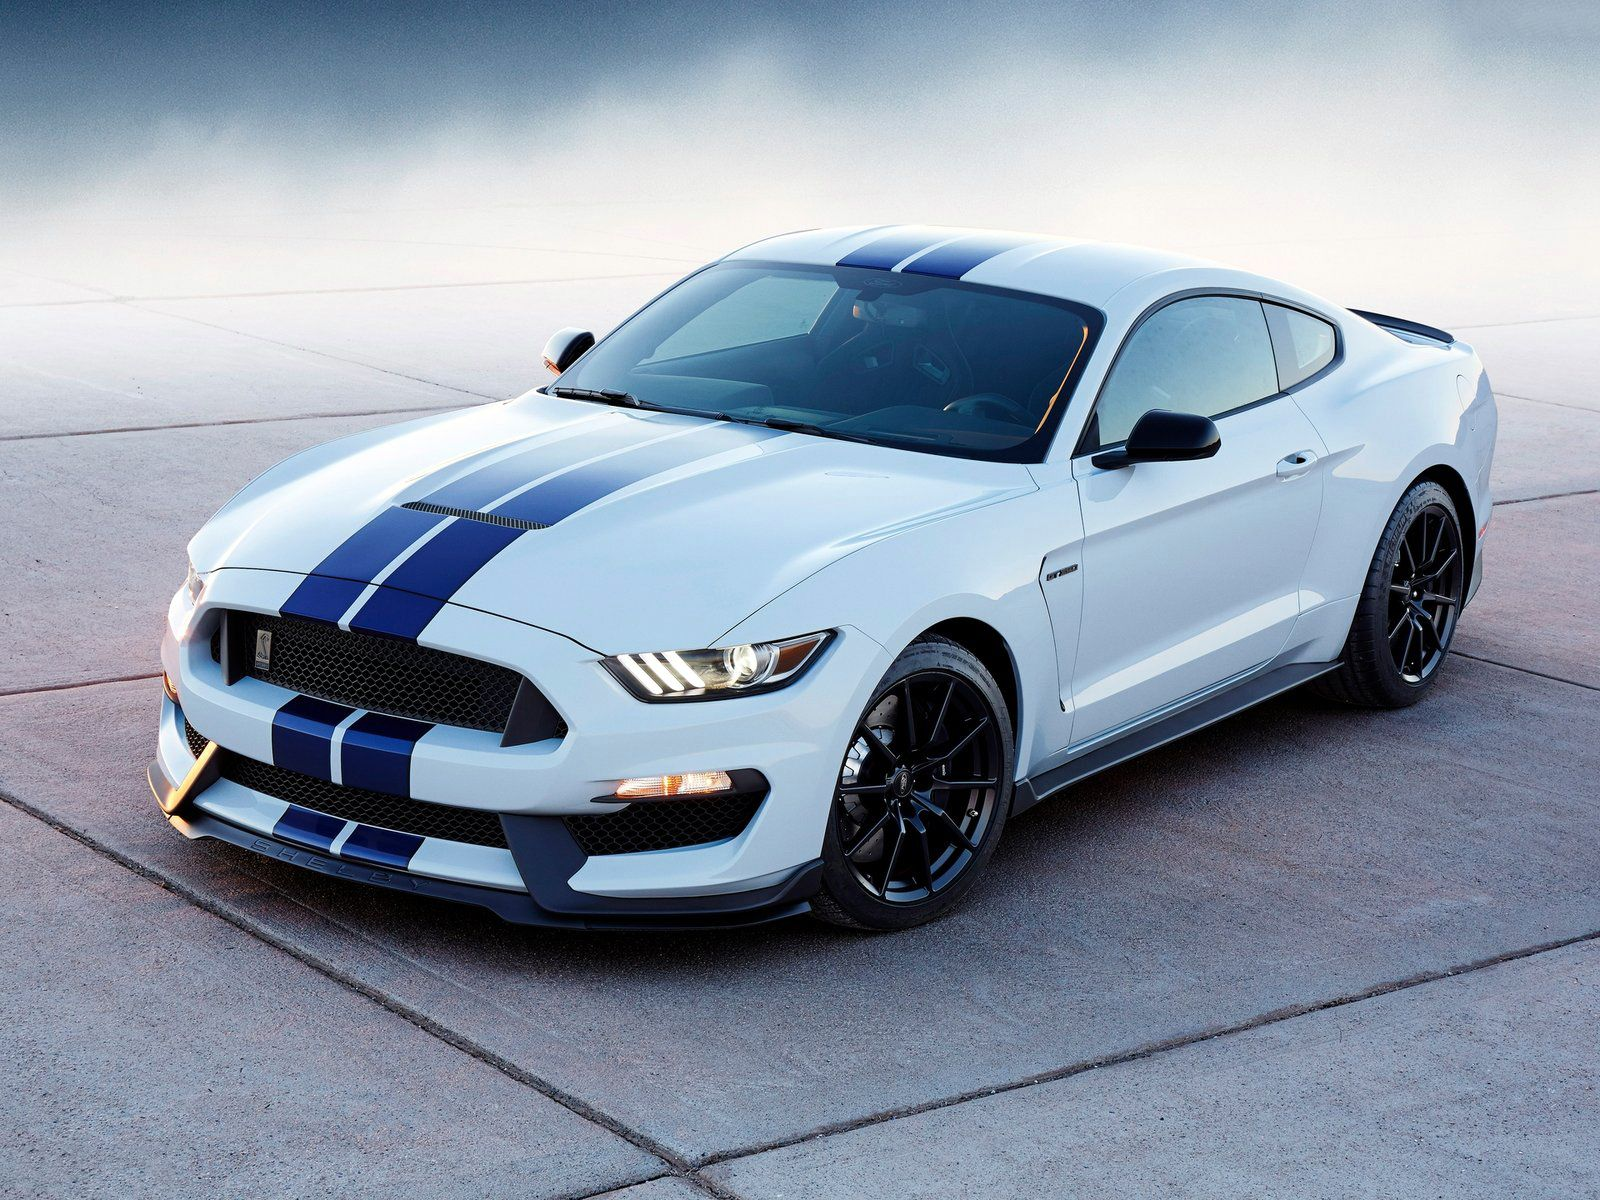 Cool cars 2016 ford mustang gt spy shoot pictures car interior - 2016 Shelby Ford Mustang Gt350